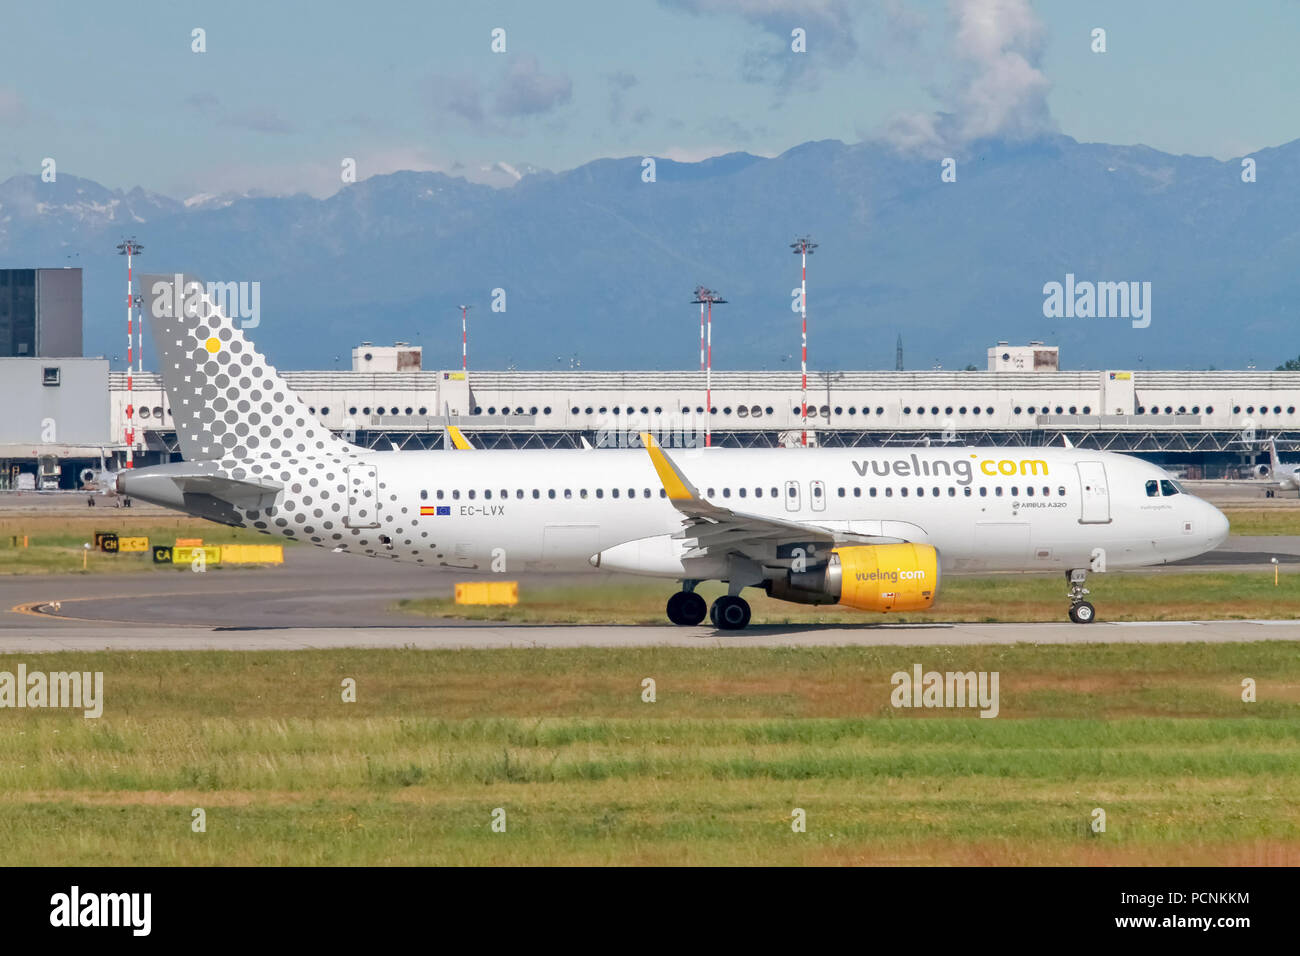 Vueling Airlines Airbus A320-200 (EC-LVX) ready for takeoff at Linate Airport, Milan, Italy - Stock Image